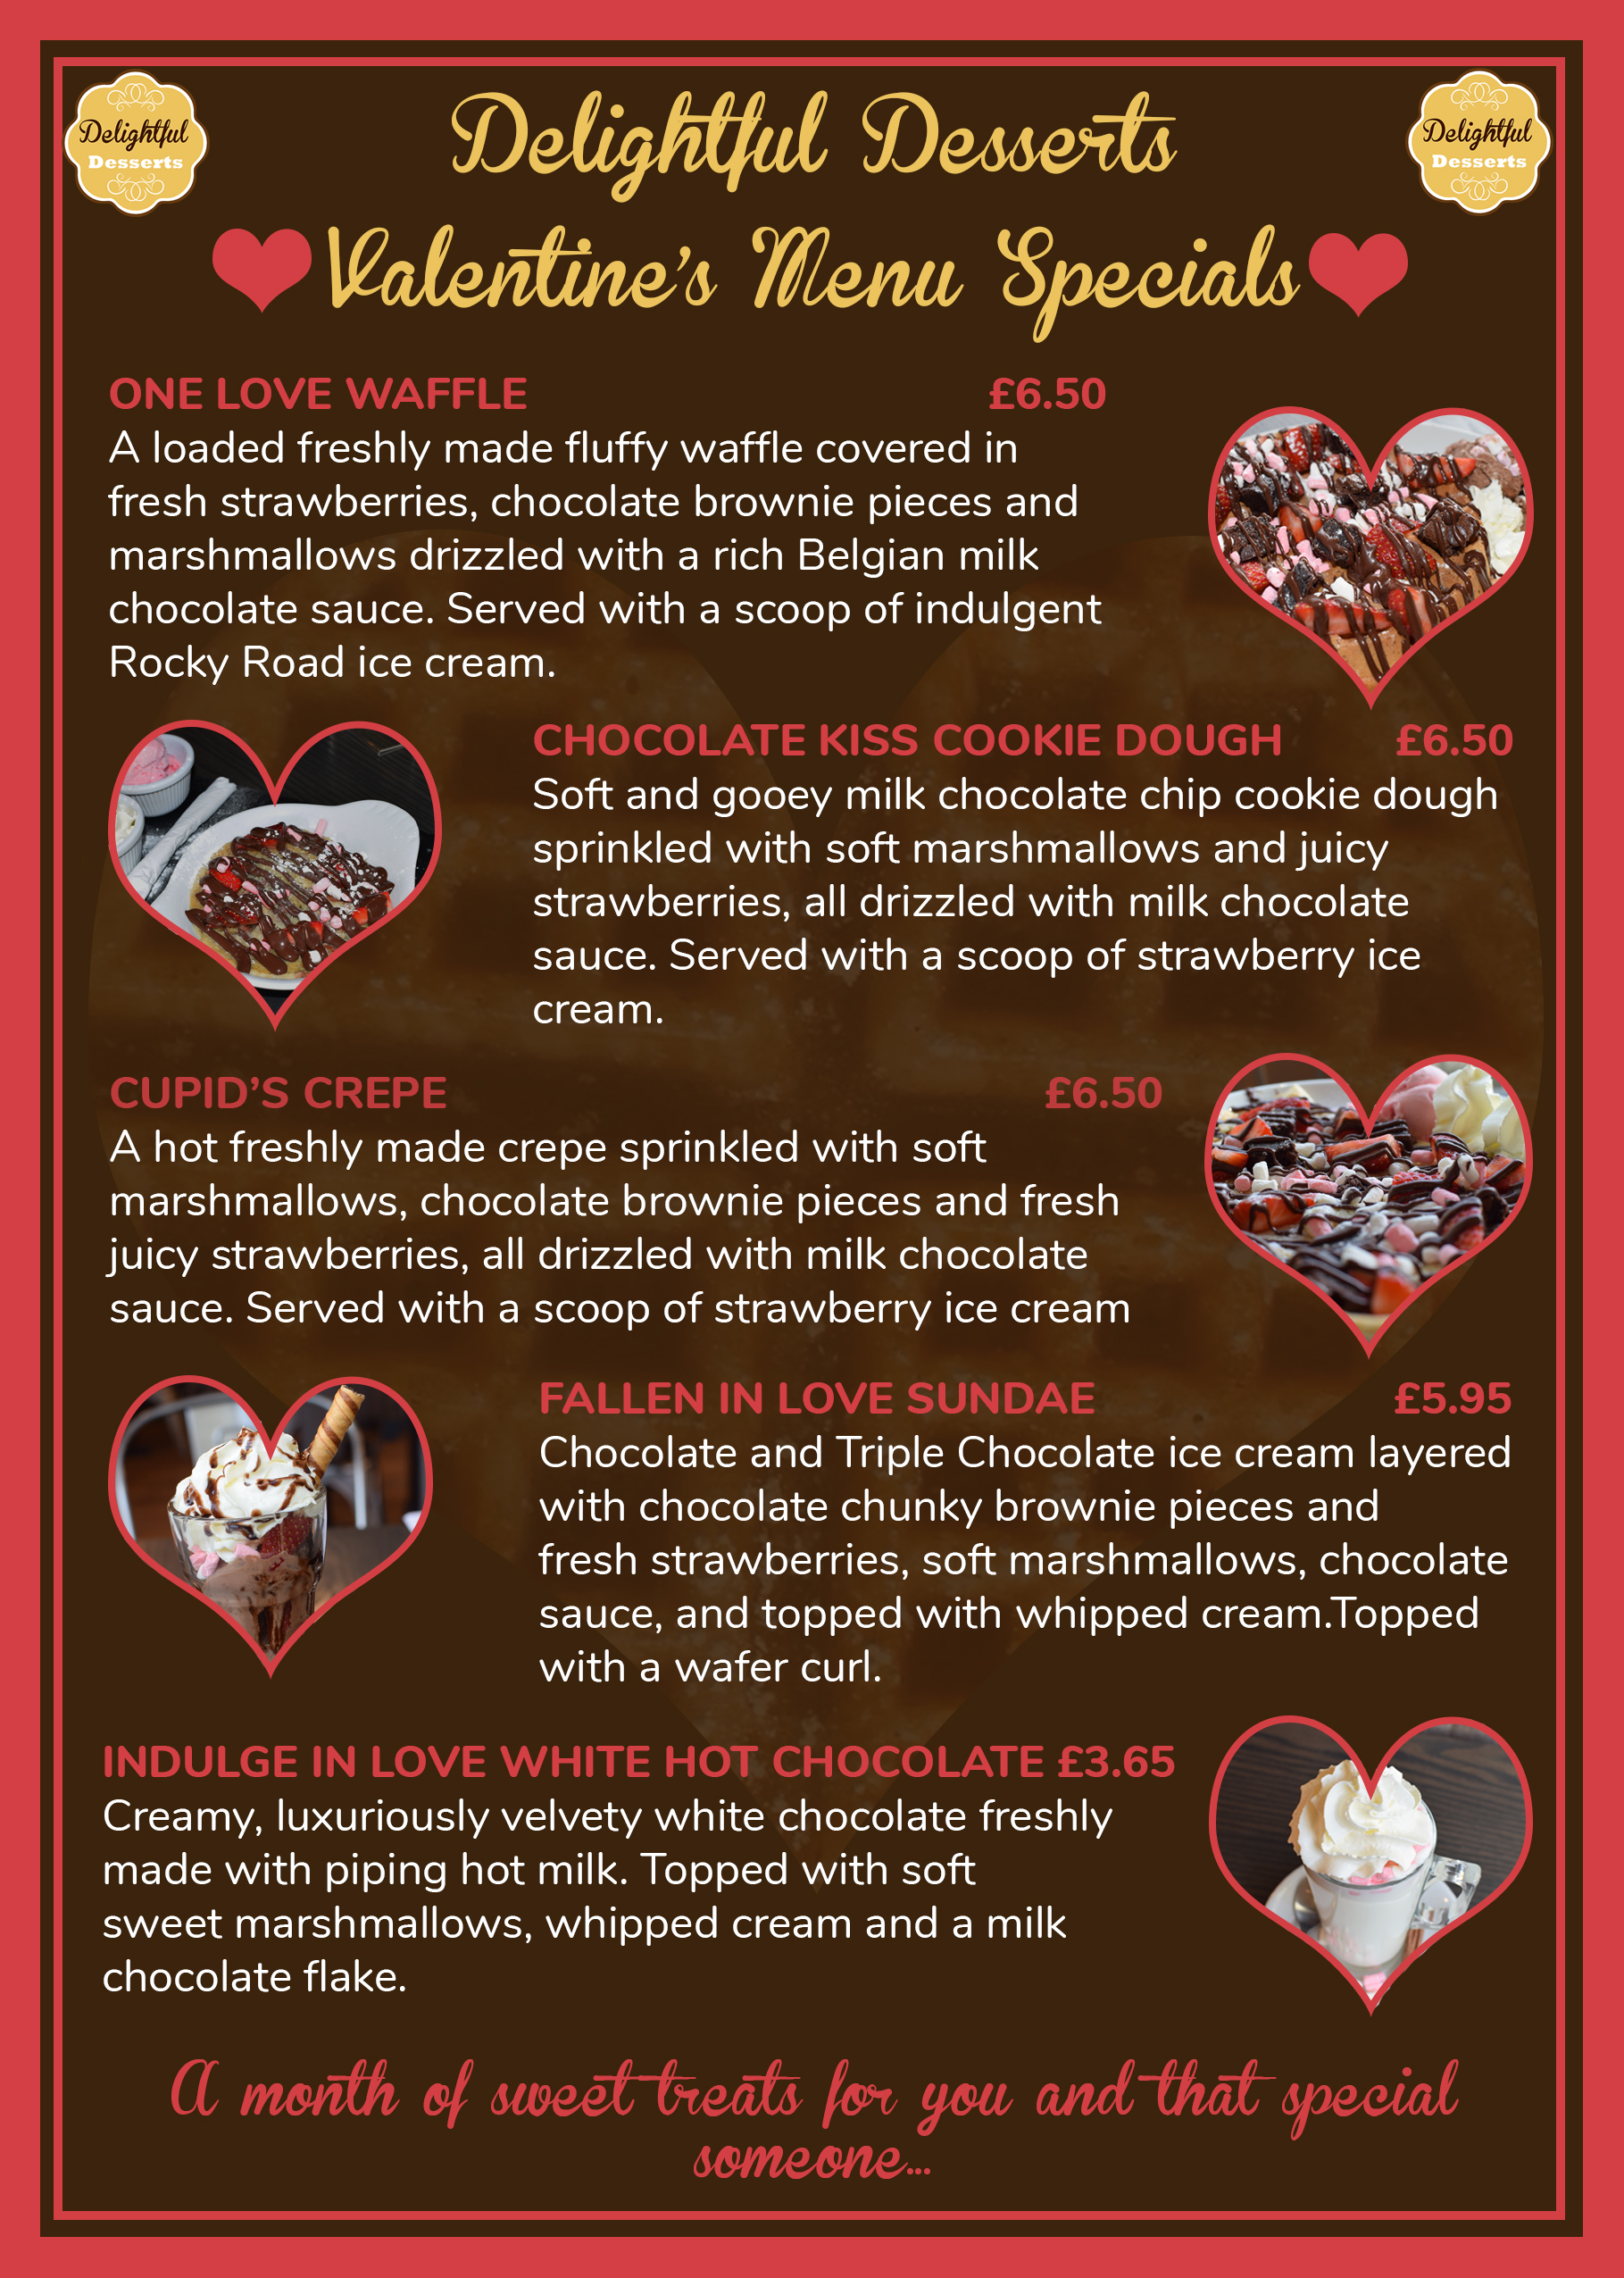 Valentine's Menu: In full.